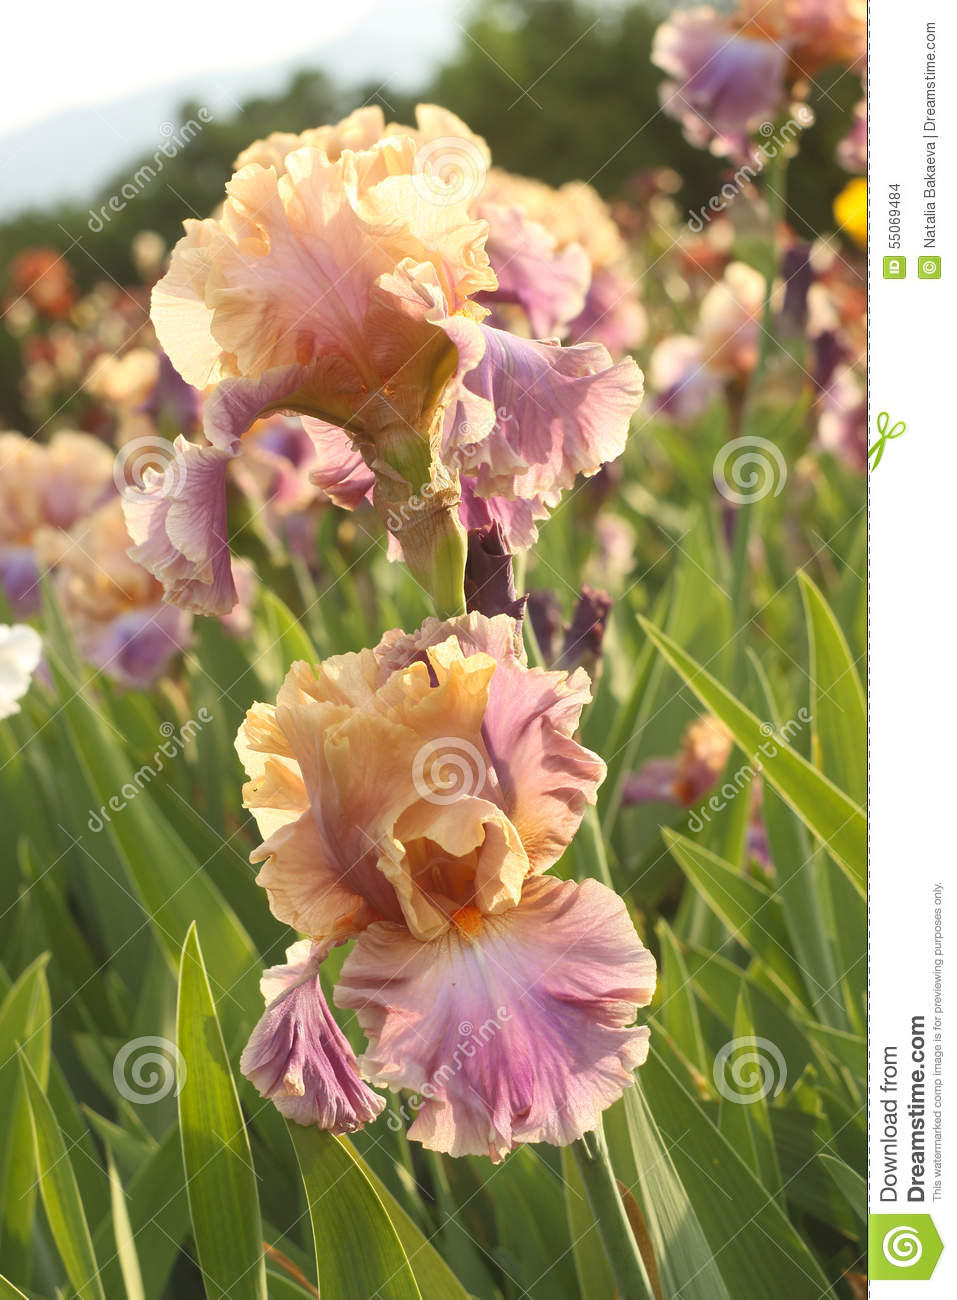 Bicolor iris on a flower bed stock photo image of season nature bicolor iris on a flower bed izmirmasajfo